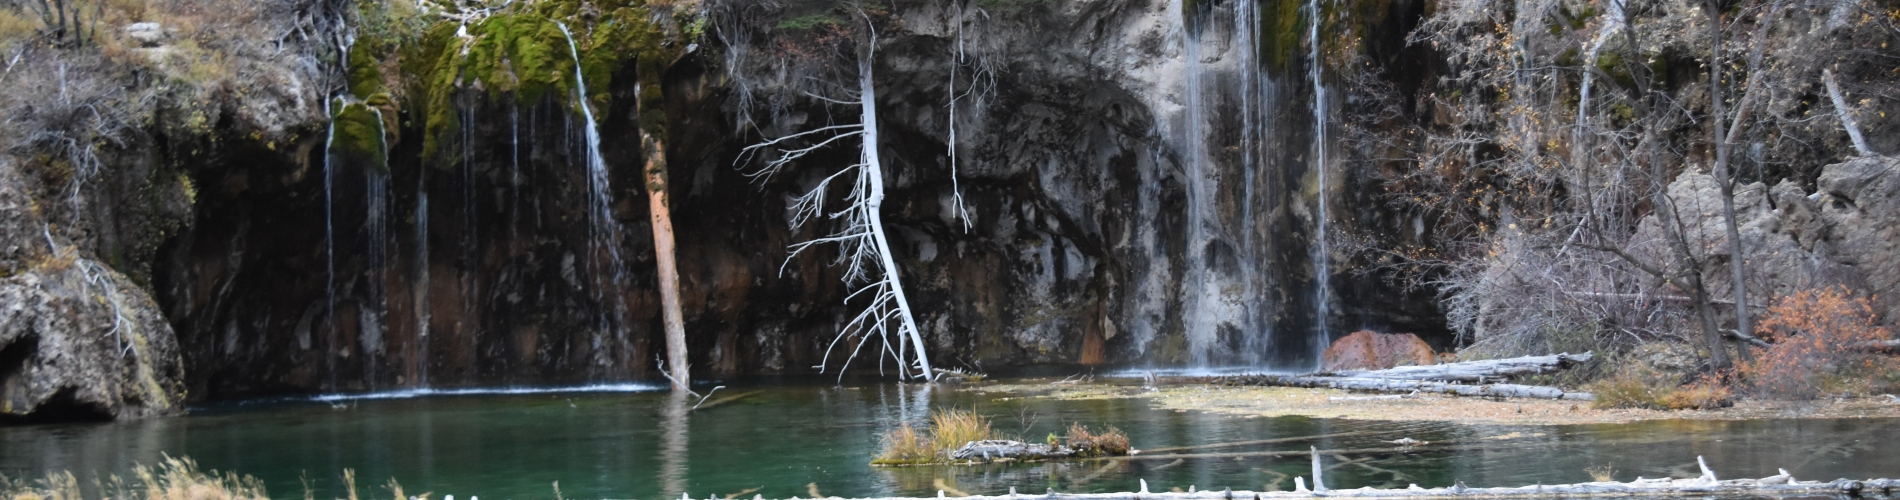 Hanging Lake, Glenwood, CO hike photo